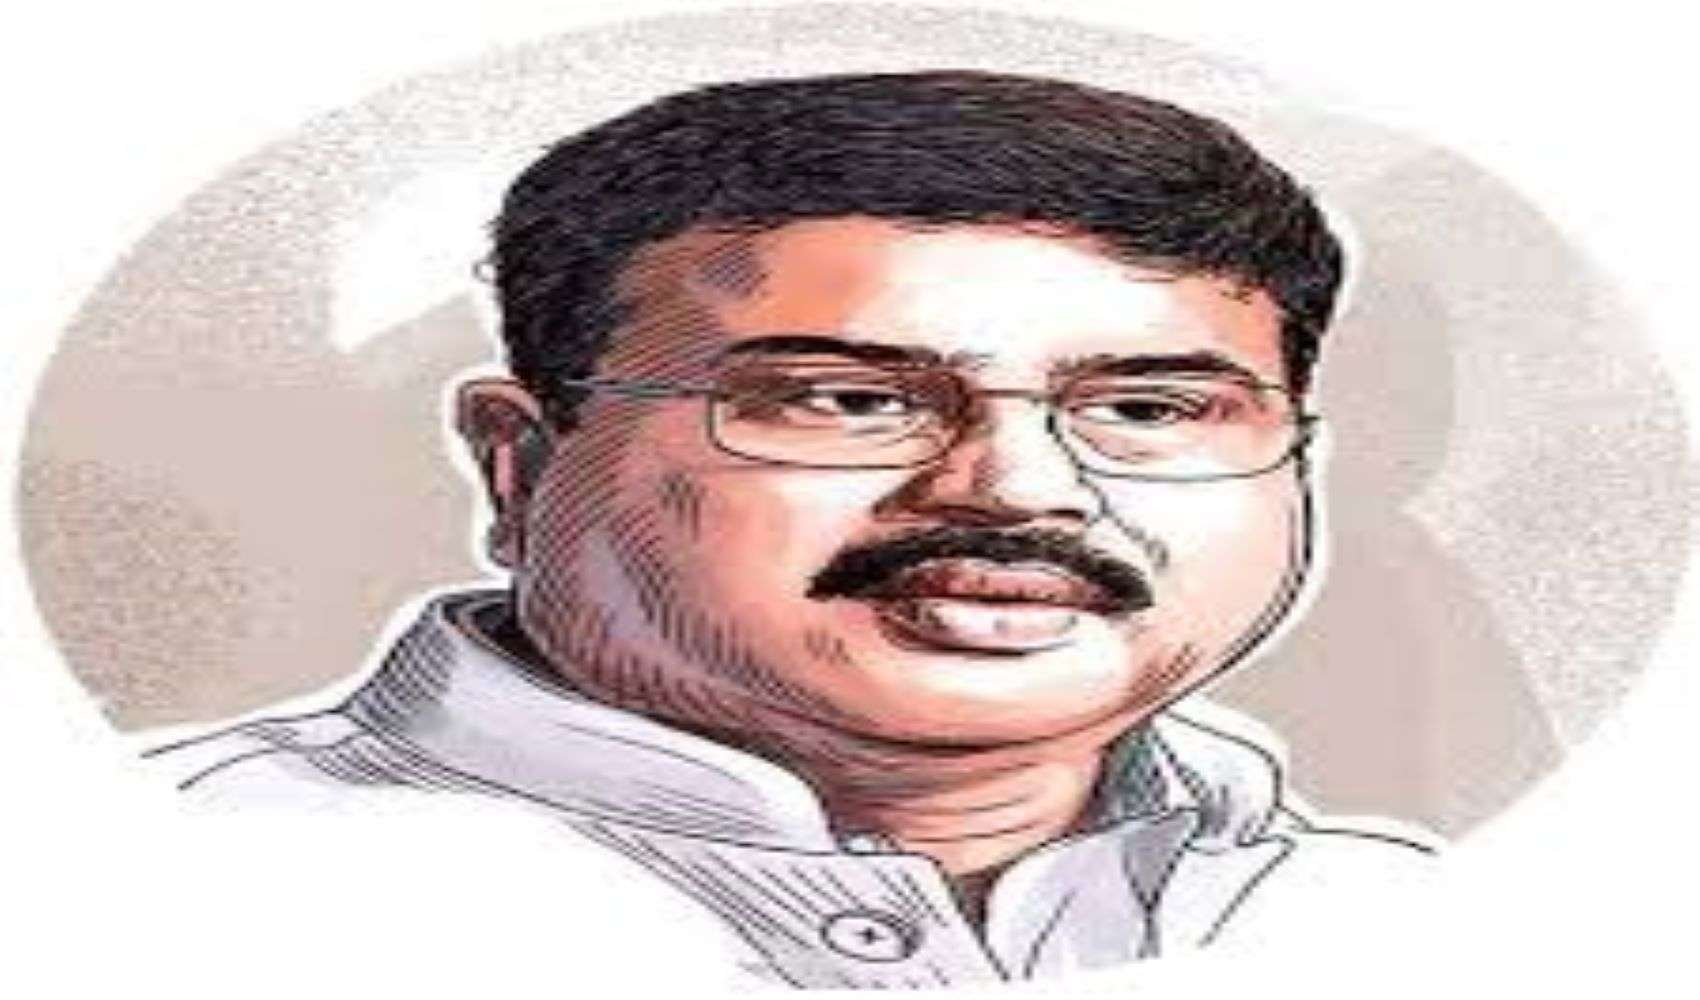 Dharmendra Pradhan is the new Minister of Education of India.